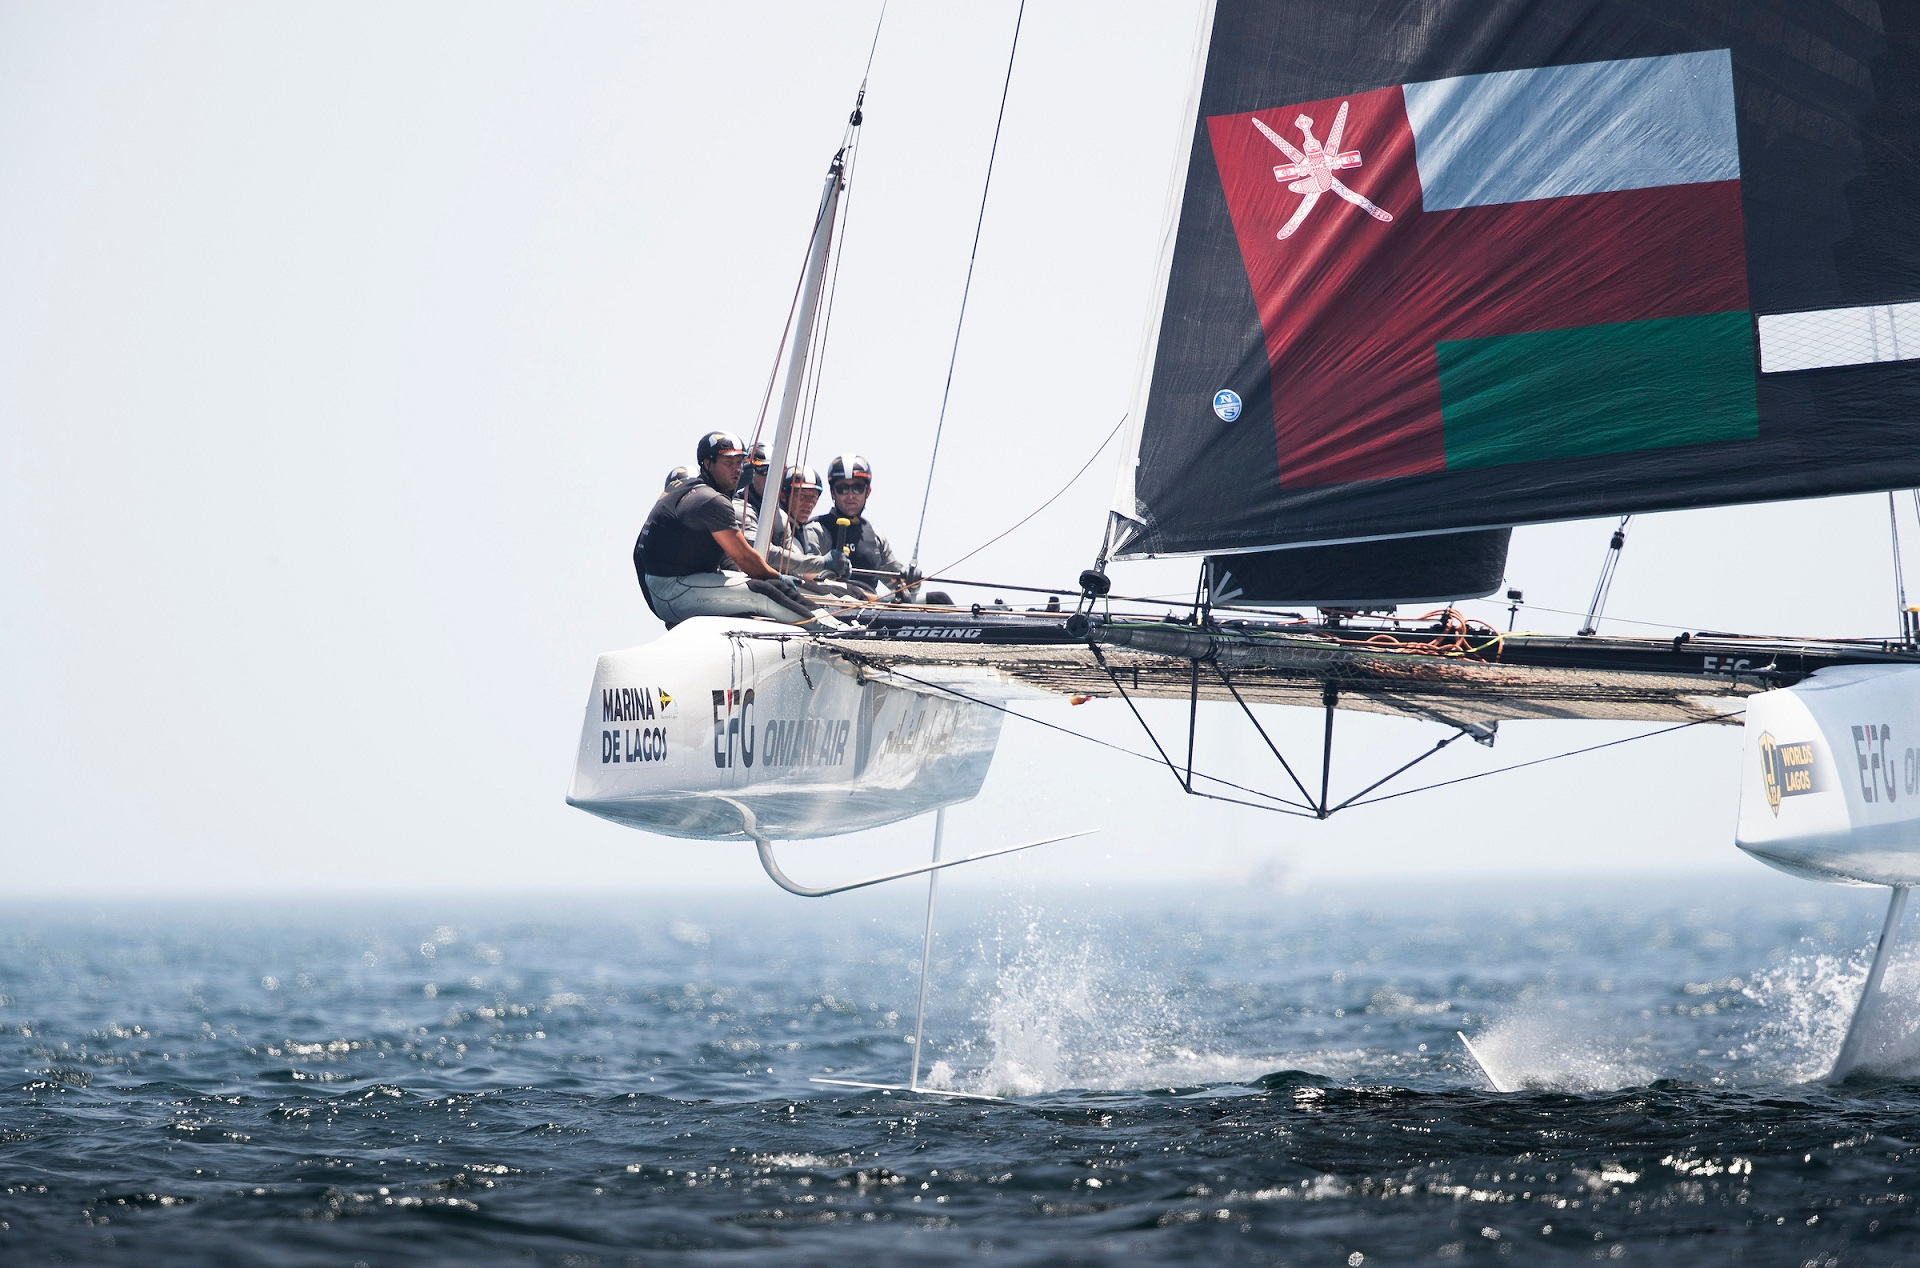 Team Oman Air aim to repeat early season success at upcoming Palma contest